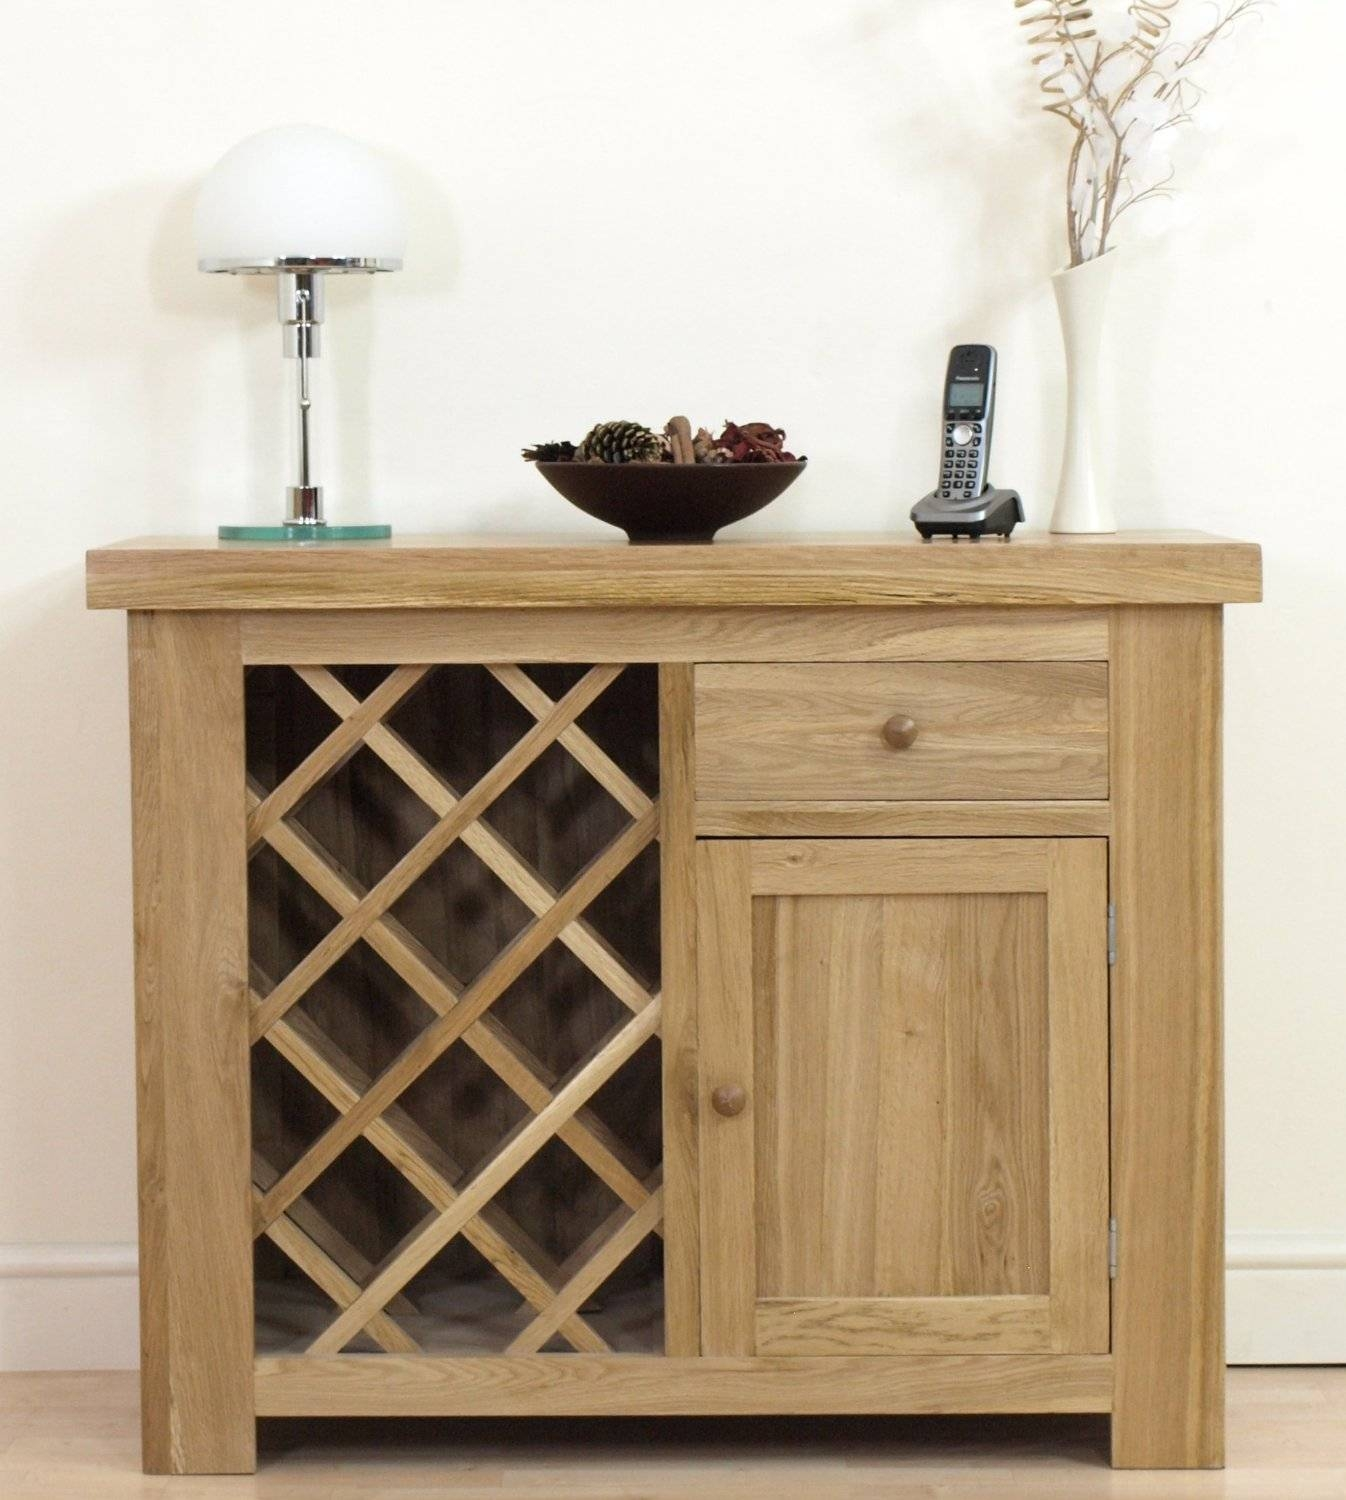 Things To Know About Sideboard With Wine Racks – Bonnie Is Good With Regard To Oak Sideboards With Wine Rack (#15 of 15)